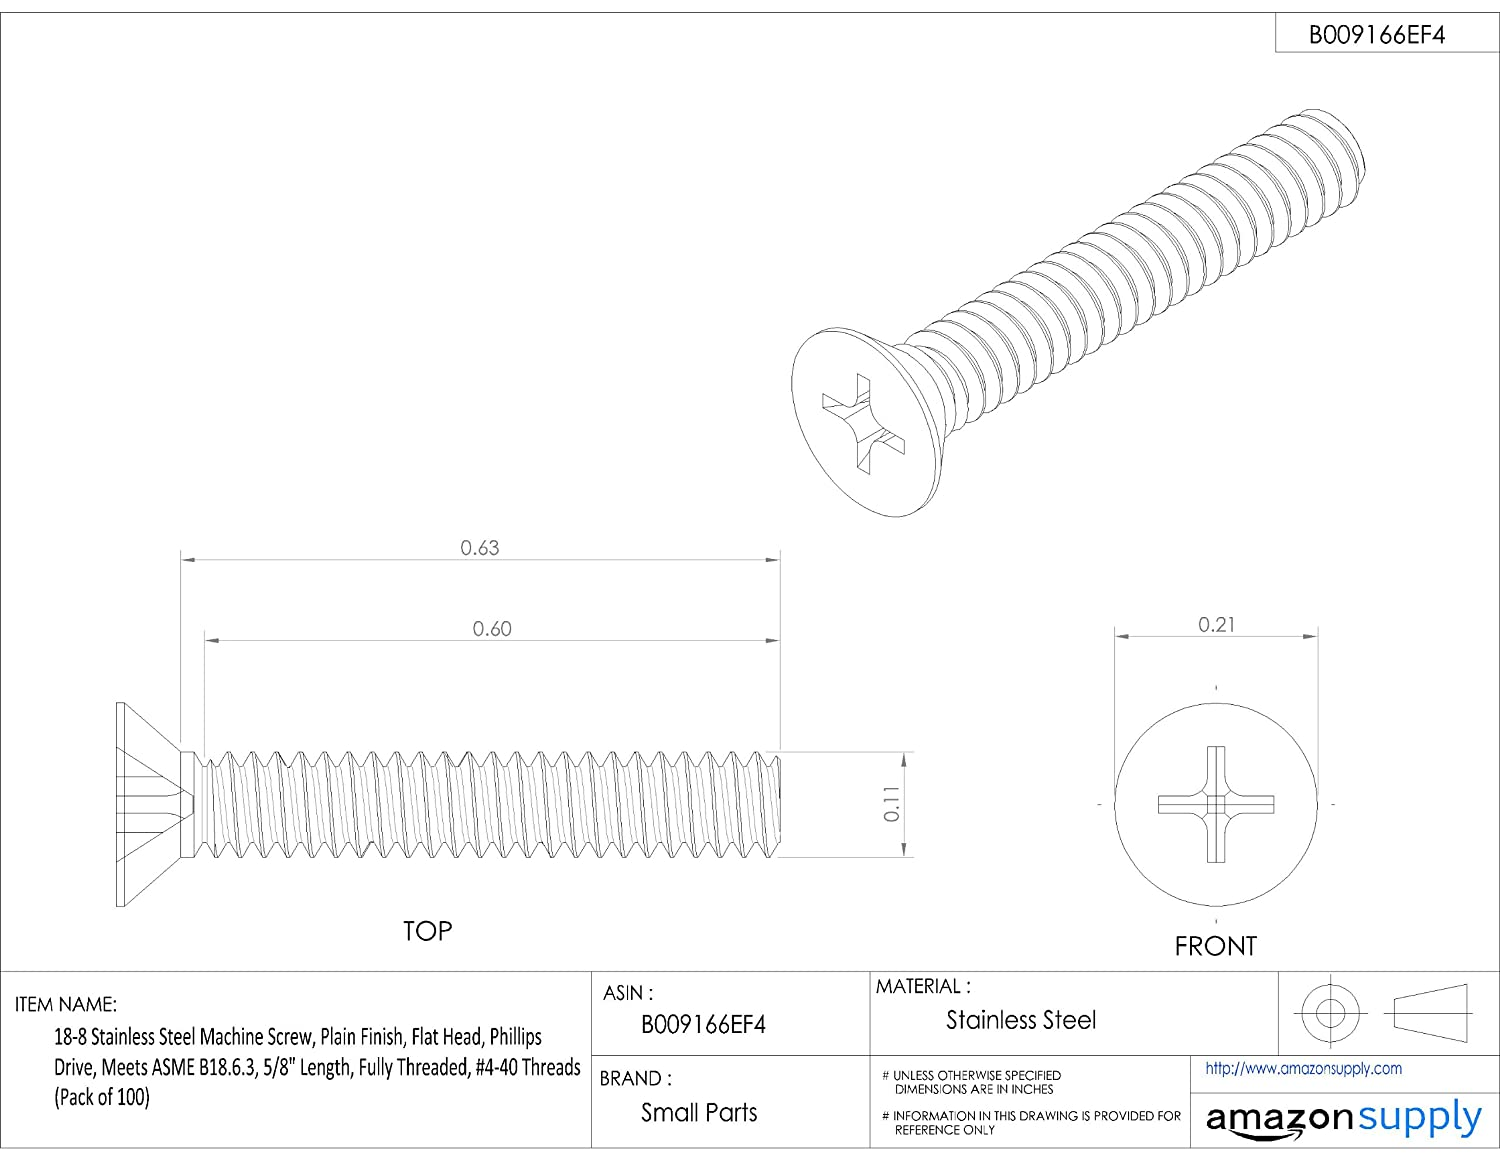 Fully Threaded Flat Head Phillips Drive Pack of 100 Meets ASME B18.6.3 18-8 Stainless Steel Machine Screw #4-40 UNC Threads Plain Finish 5//8 Length 5//8 Length Small Parts